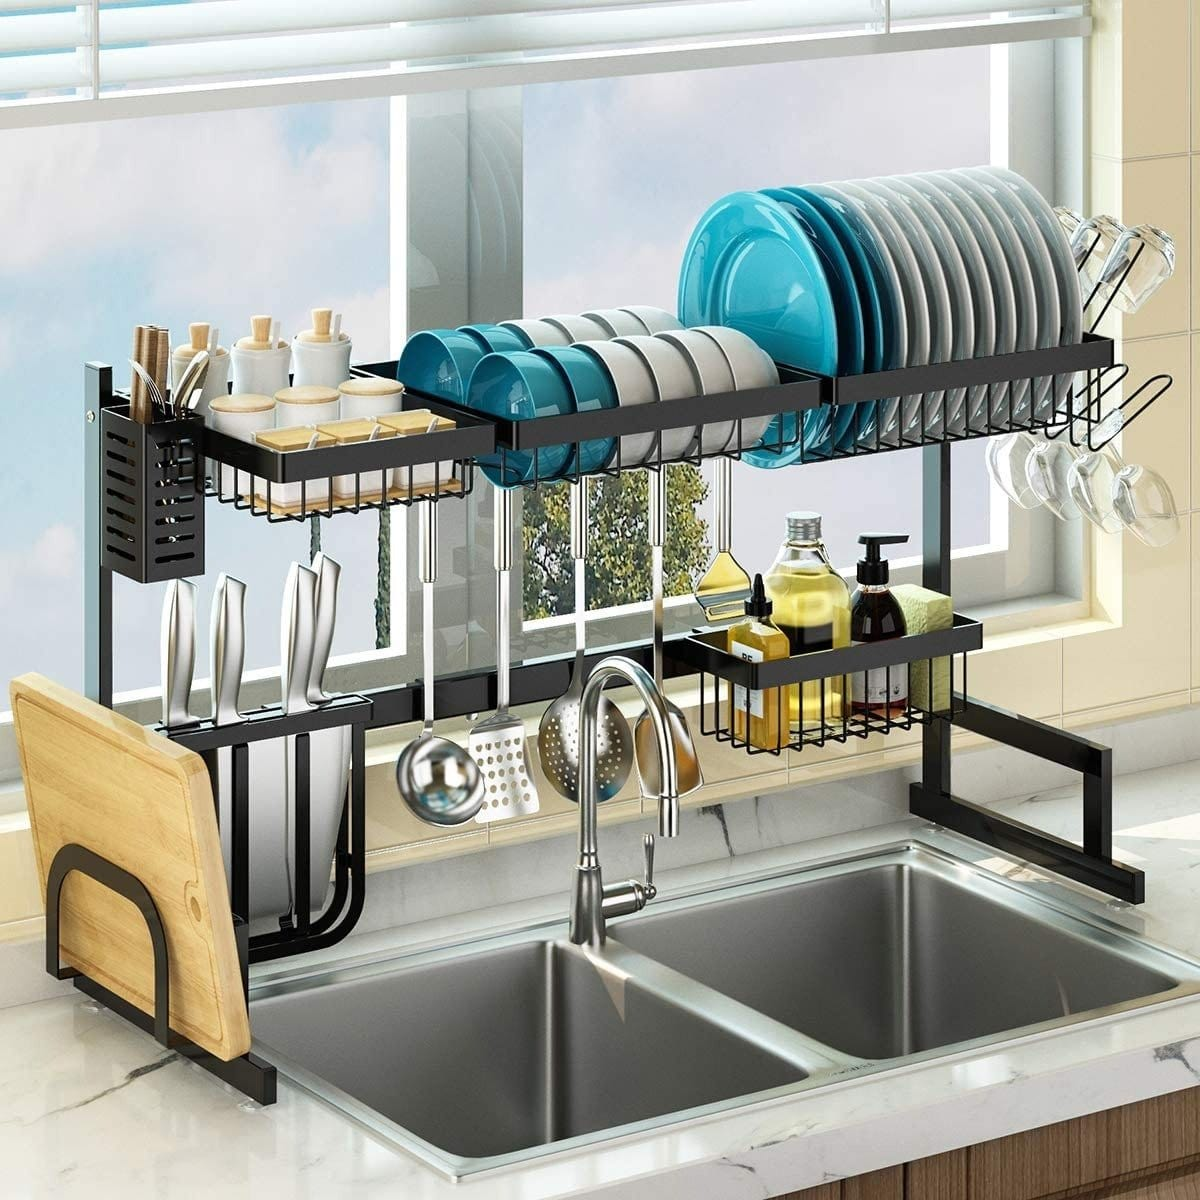 Skepre™ Over The Sink 1-in-9 Organizer